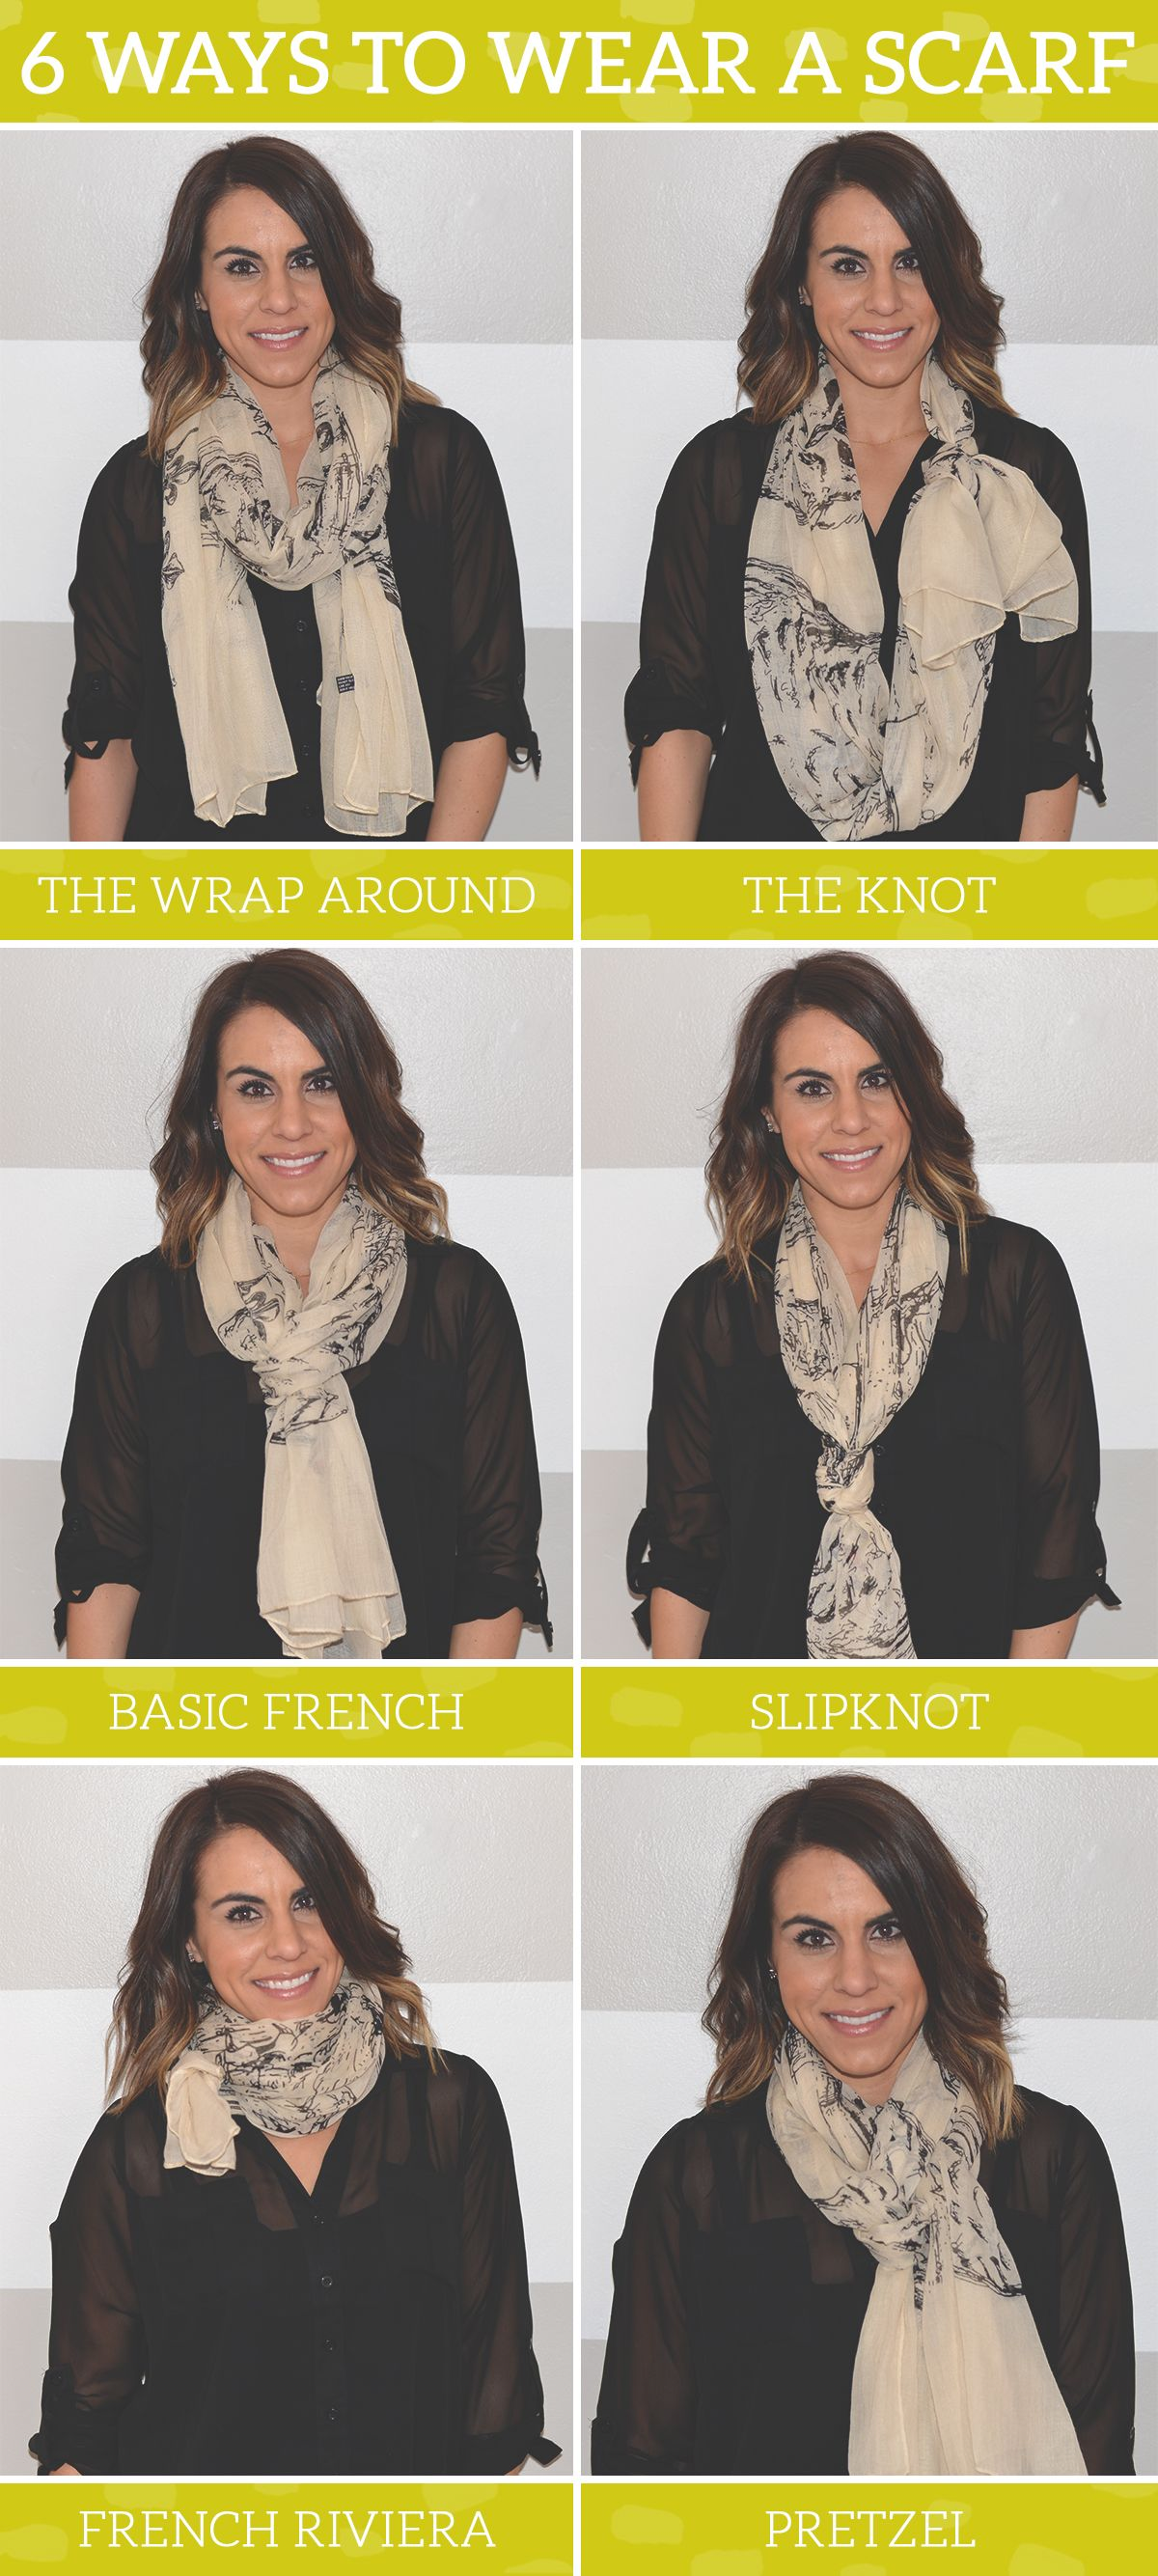 6 Ways to Wear a Scarf #winter #scarves #fashion